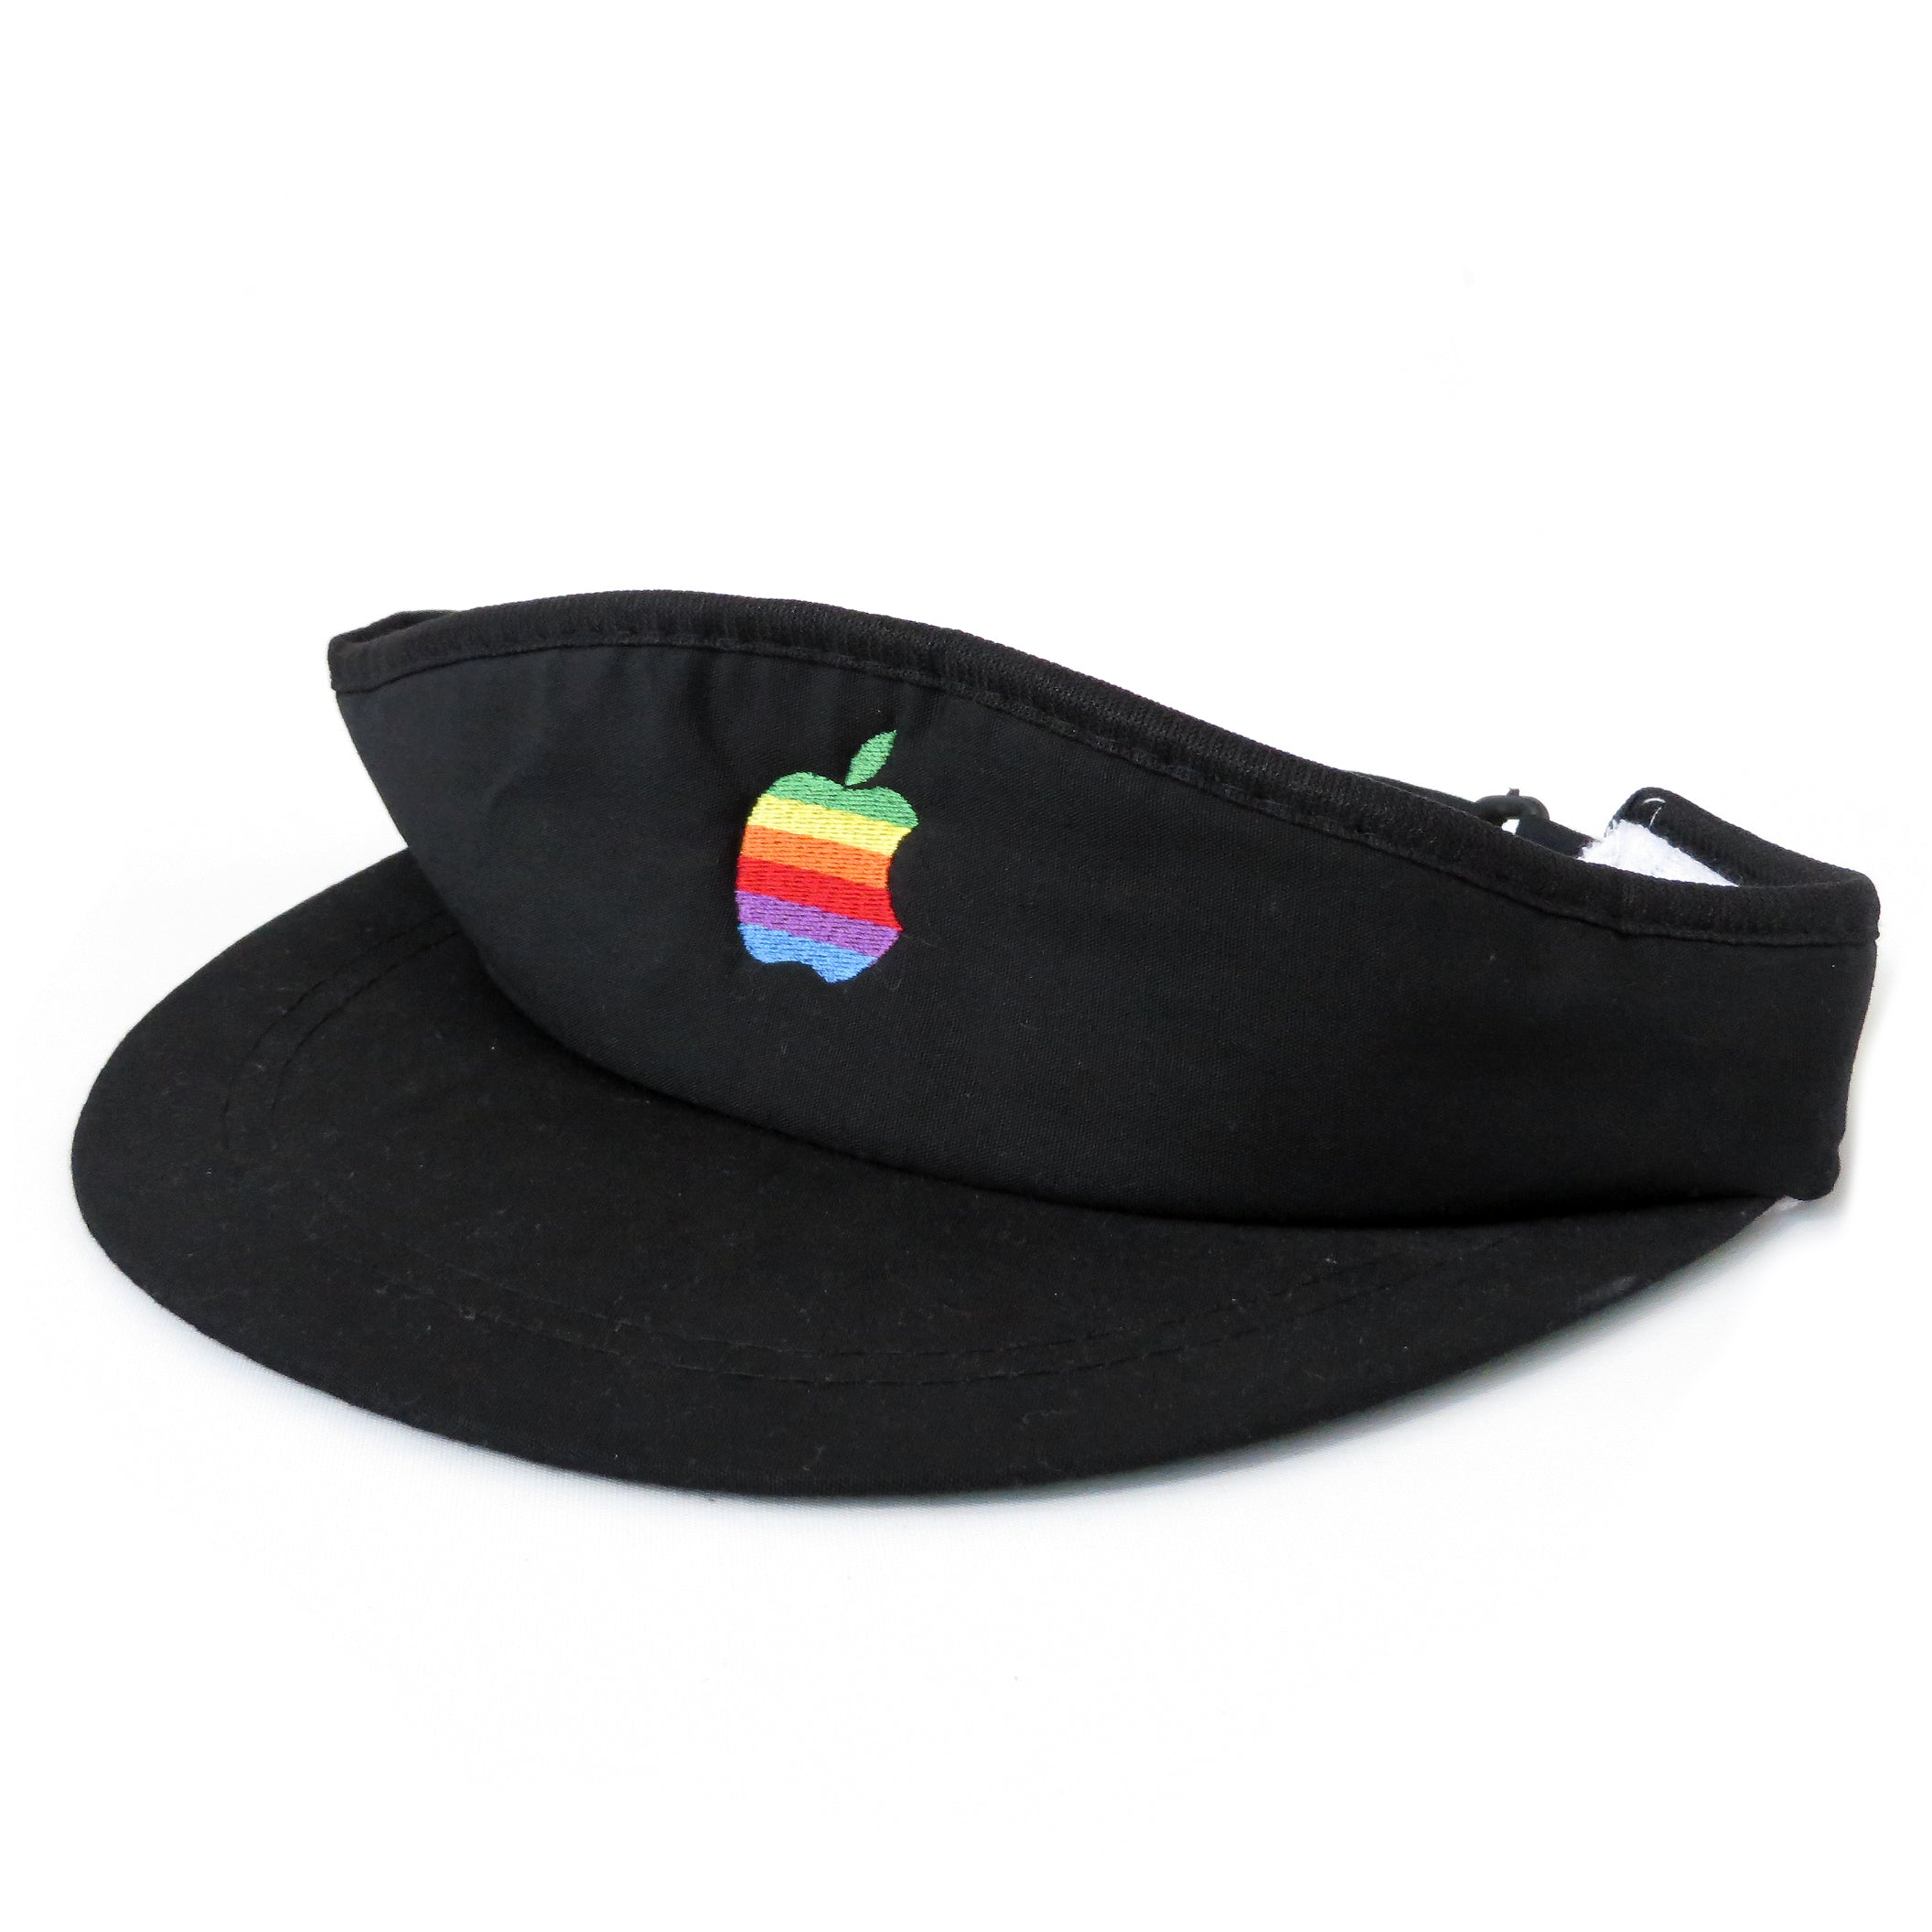 Vintage Apple Visor Hat